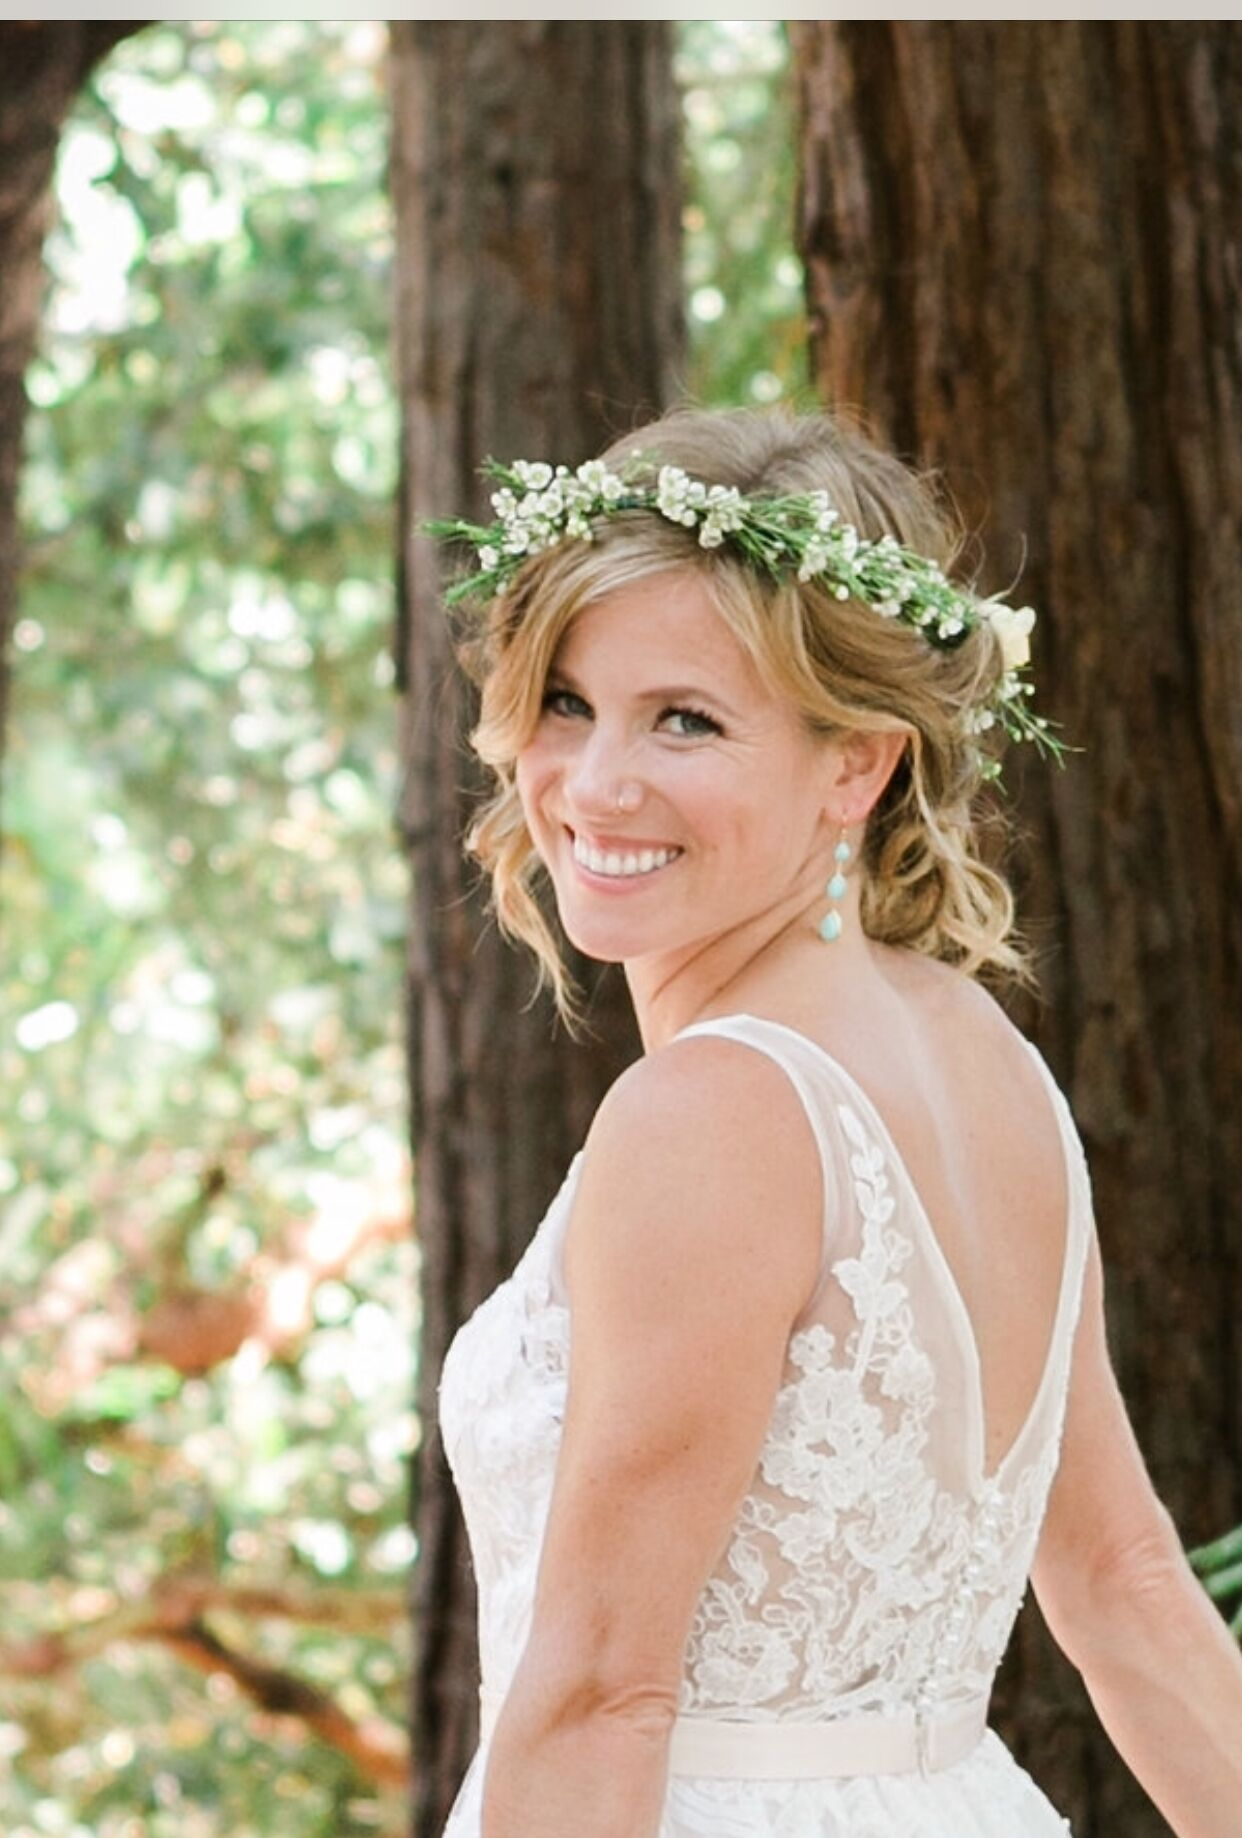 bella bridal napa valley hair & makeup artistry - saint helena, ca